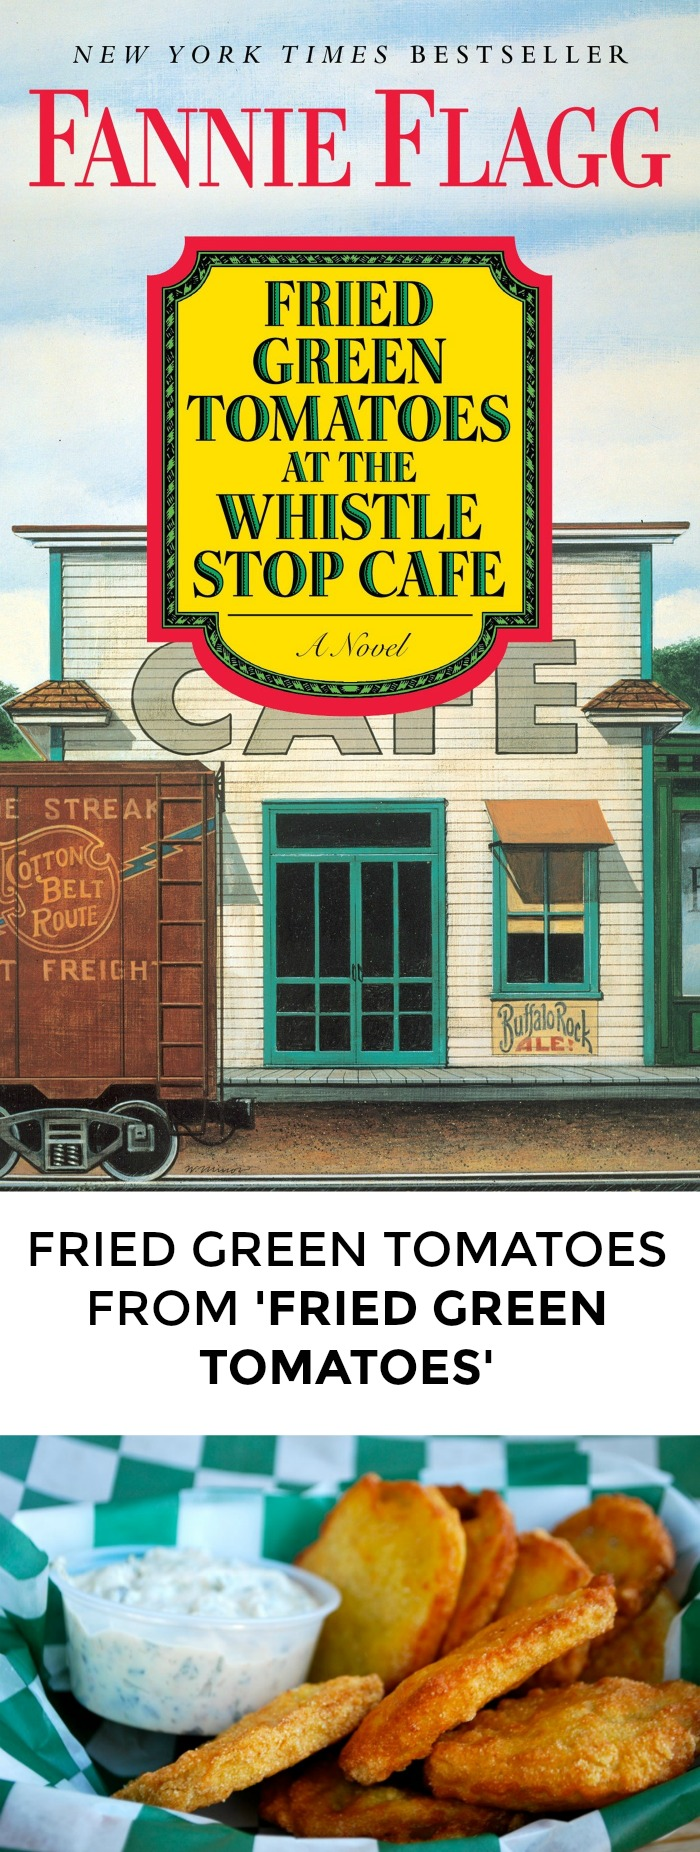 Looking for a fried green tomatoes recipe to impress your book club? Click through for this great southern recipe!